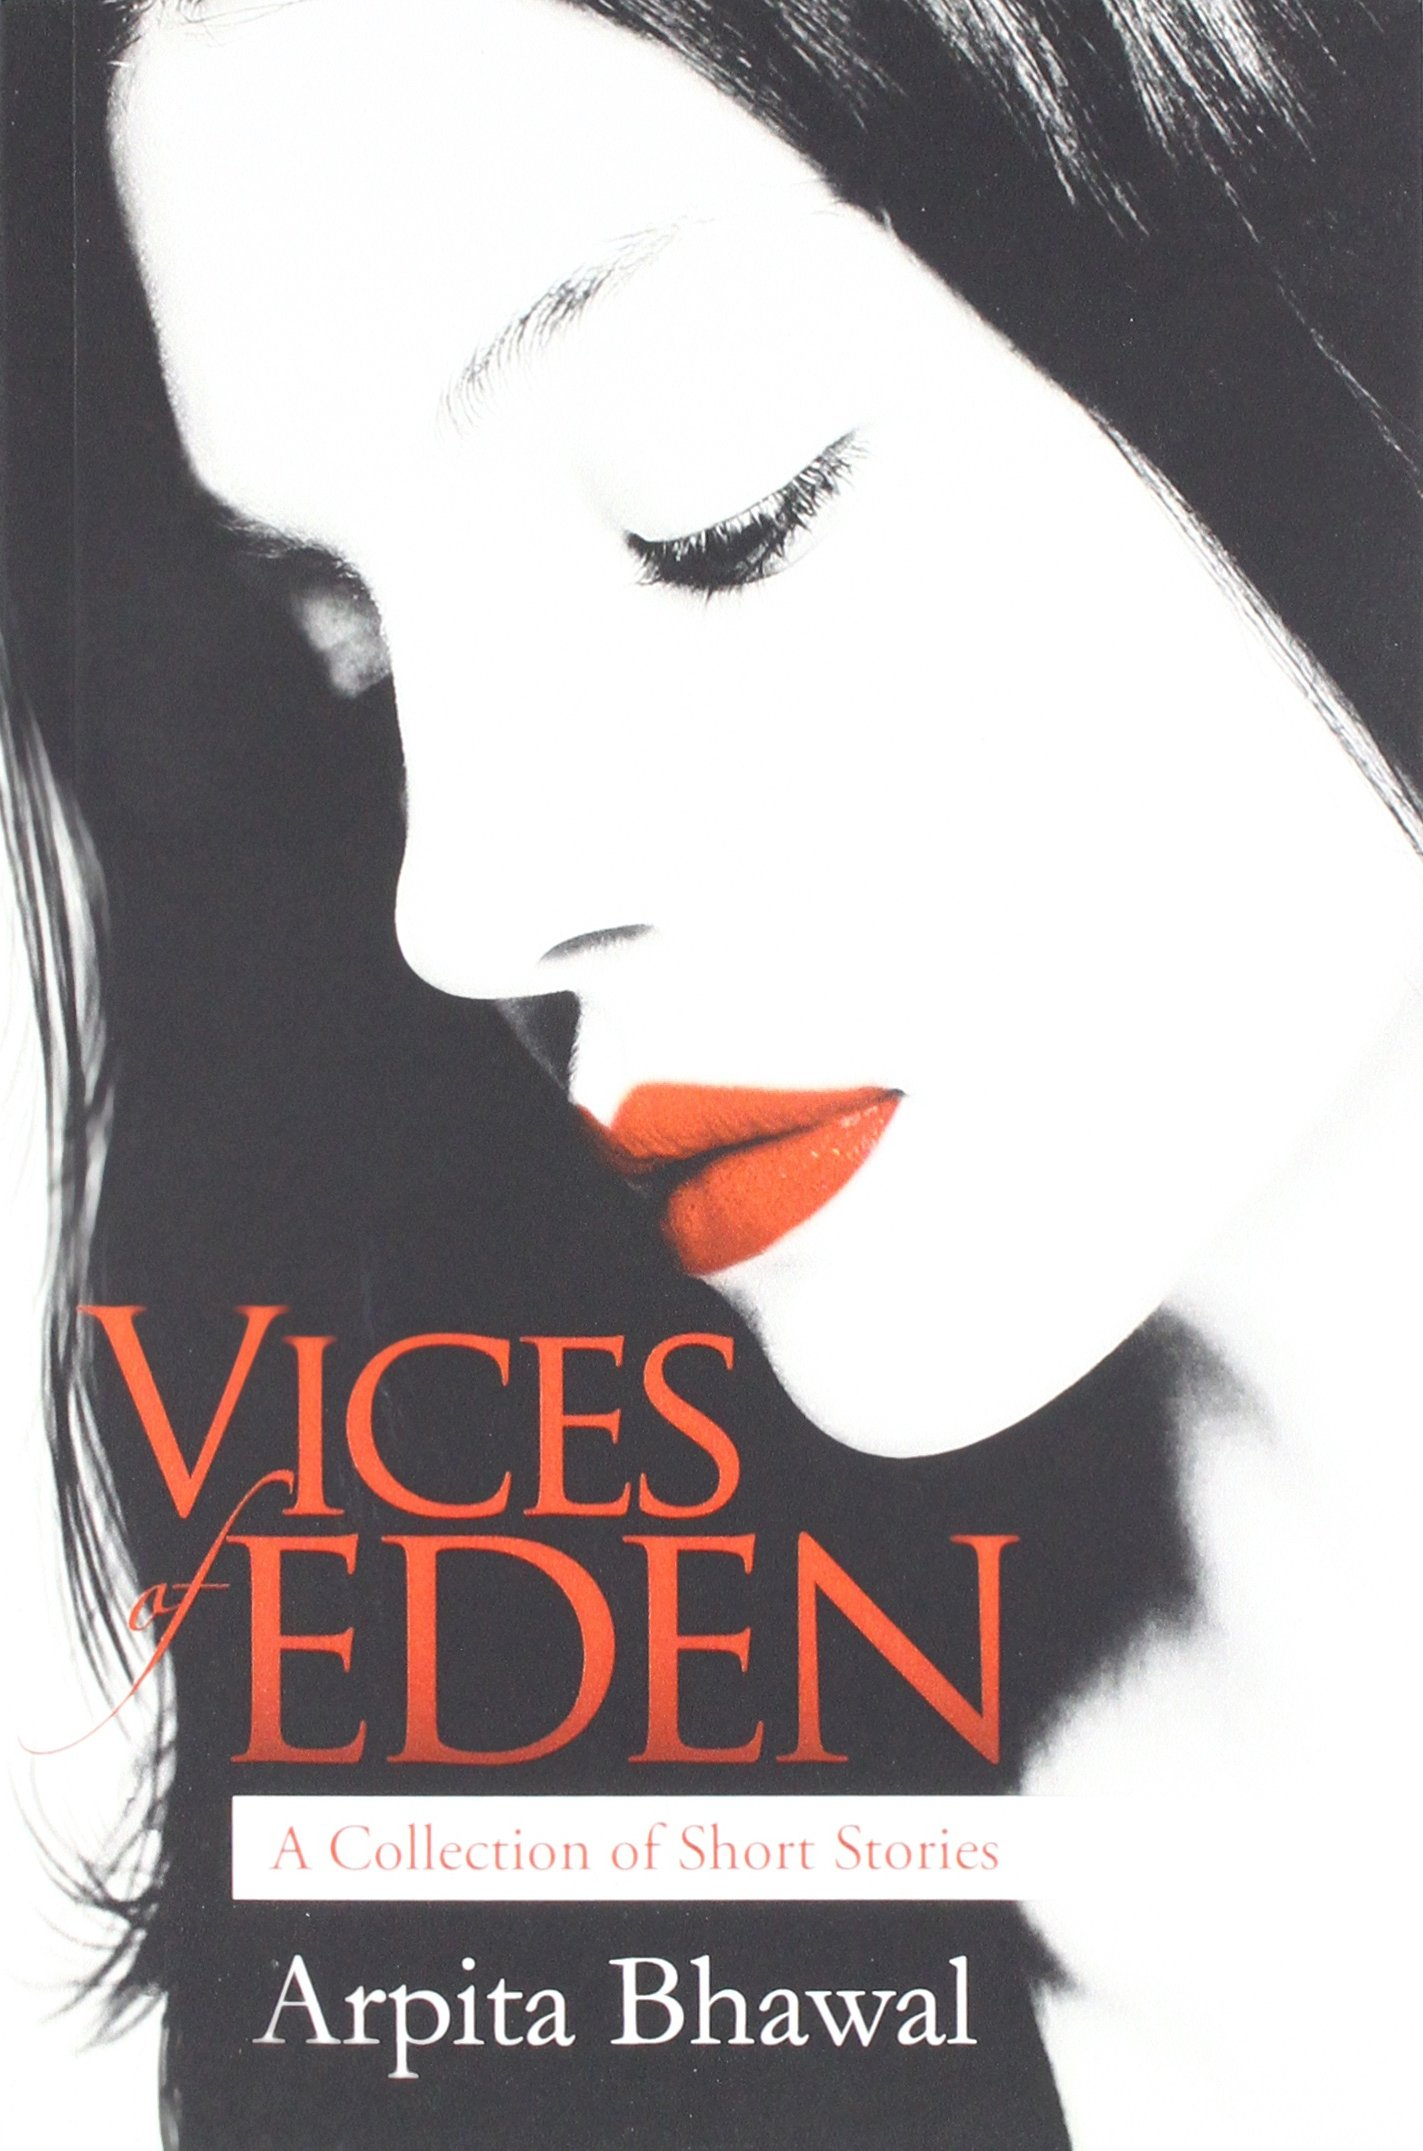 4cae663b61a Vices of Eden  Amazon.co.uk  Arpita Bhawal  9789384391232  Books